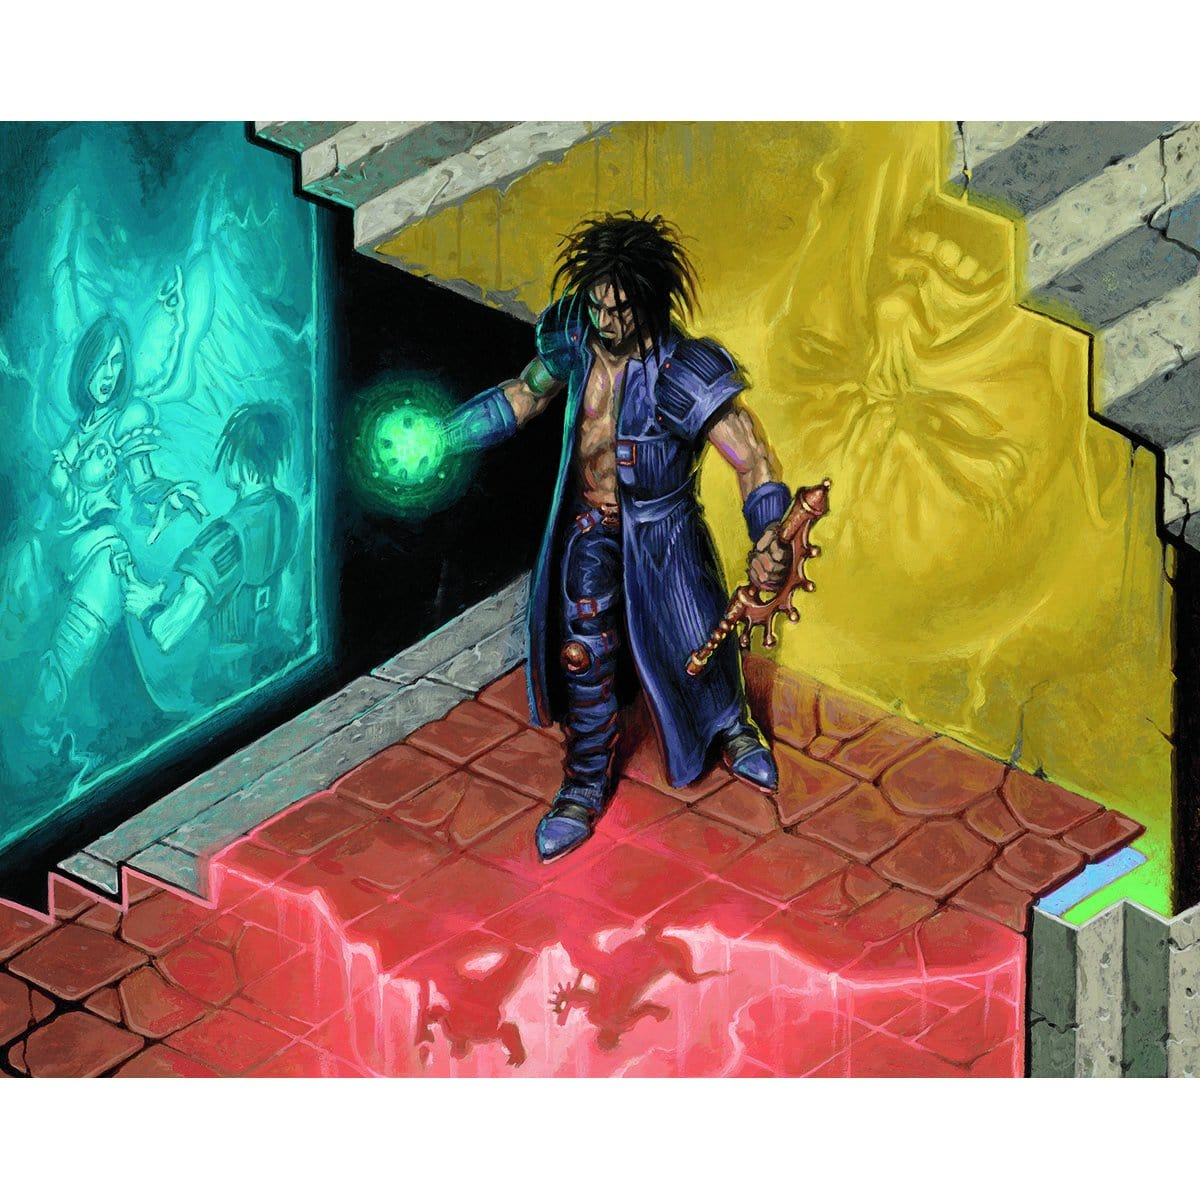 Future Sight Print - Print - Original Magic Art - Accessories for Magic the Gathering and other card games